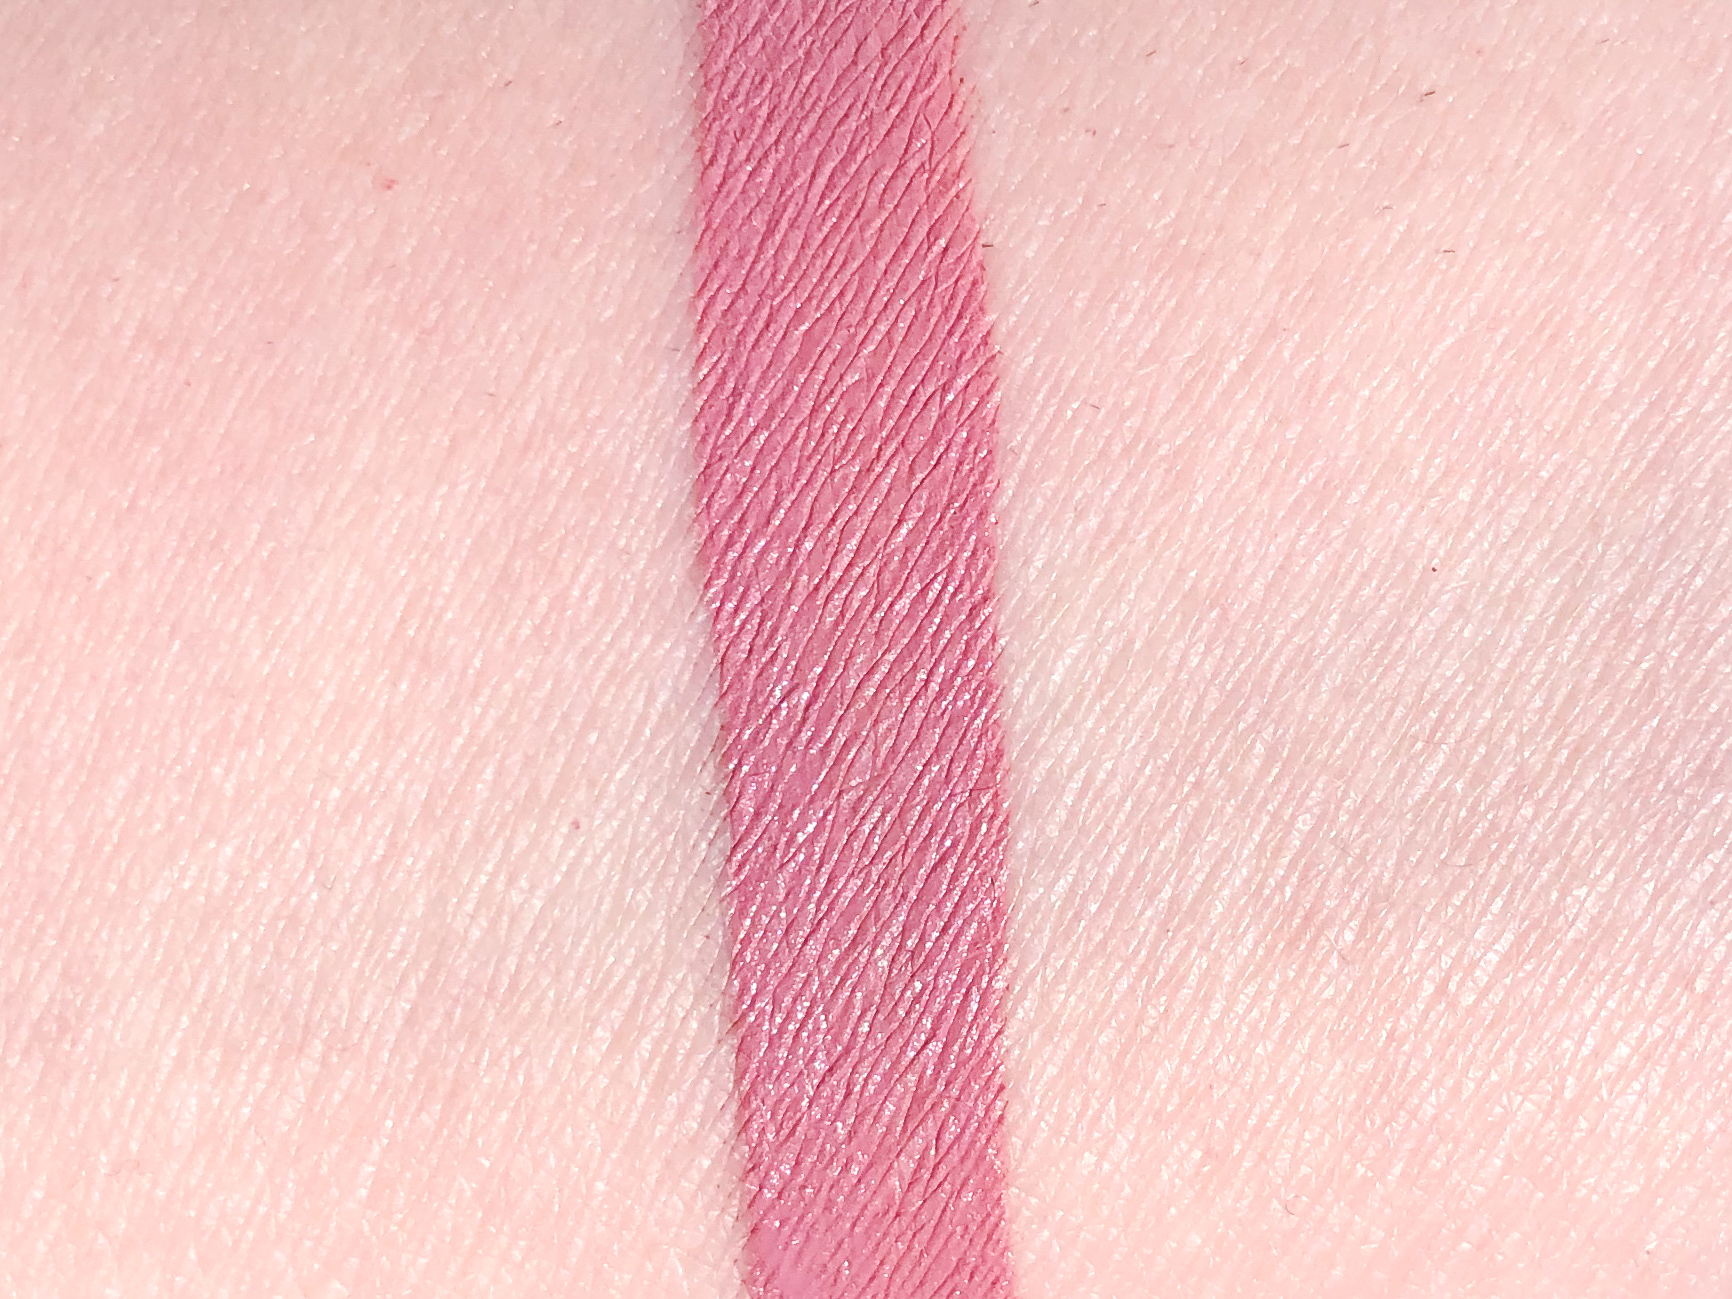 L'Oréal Candy Man Les Chocolates Ultra Matte Liquid Lipstick Review 1